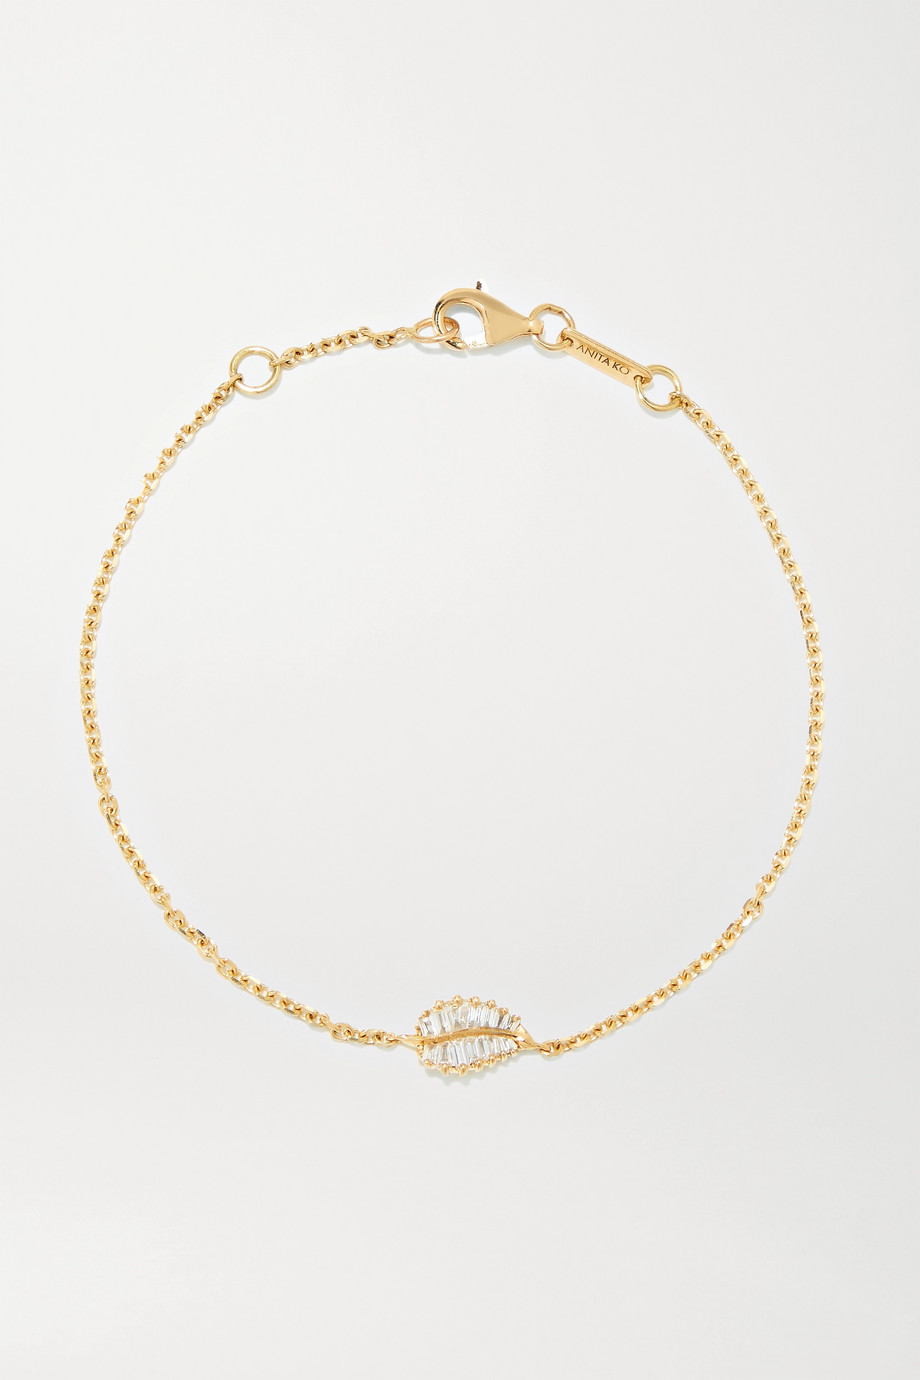 Anita Ko Palm Leaf 18-karat gold diamond bracelet